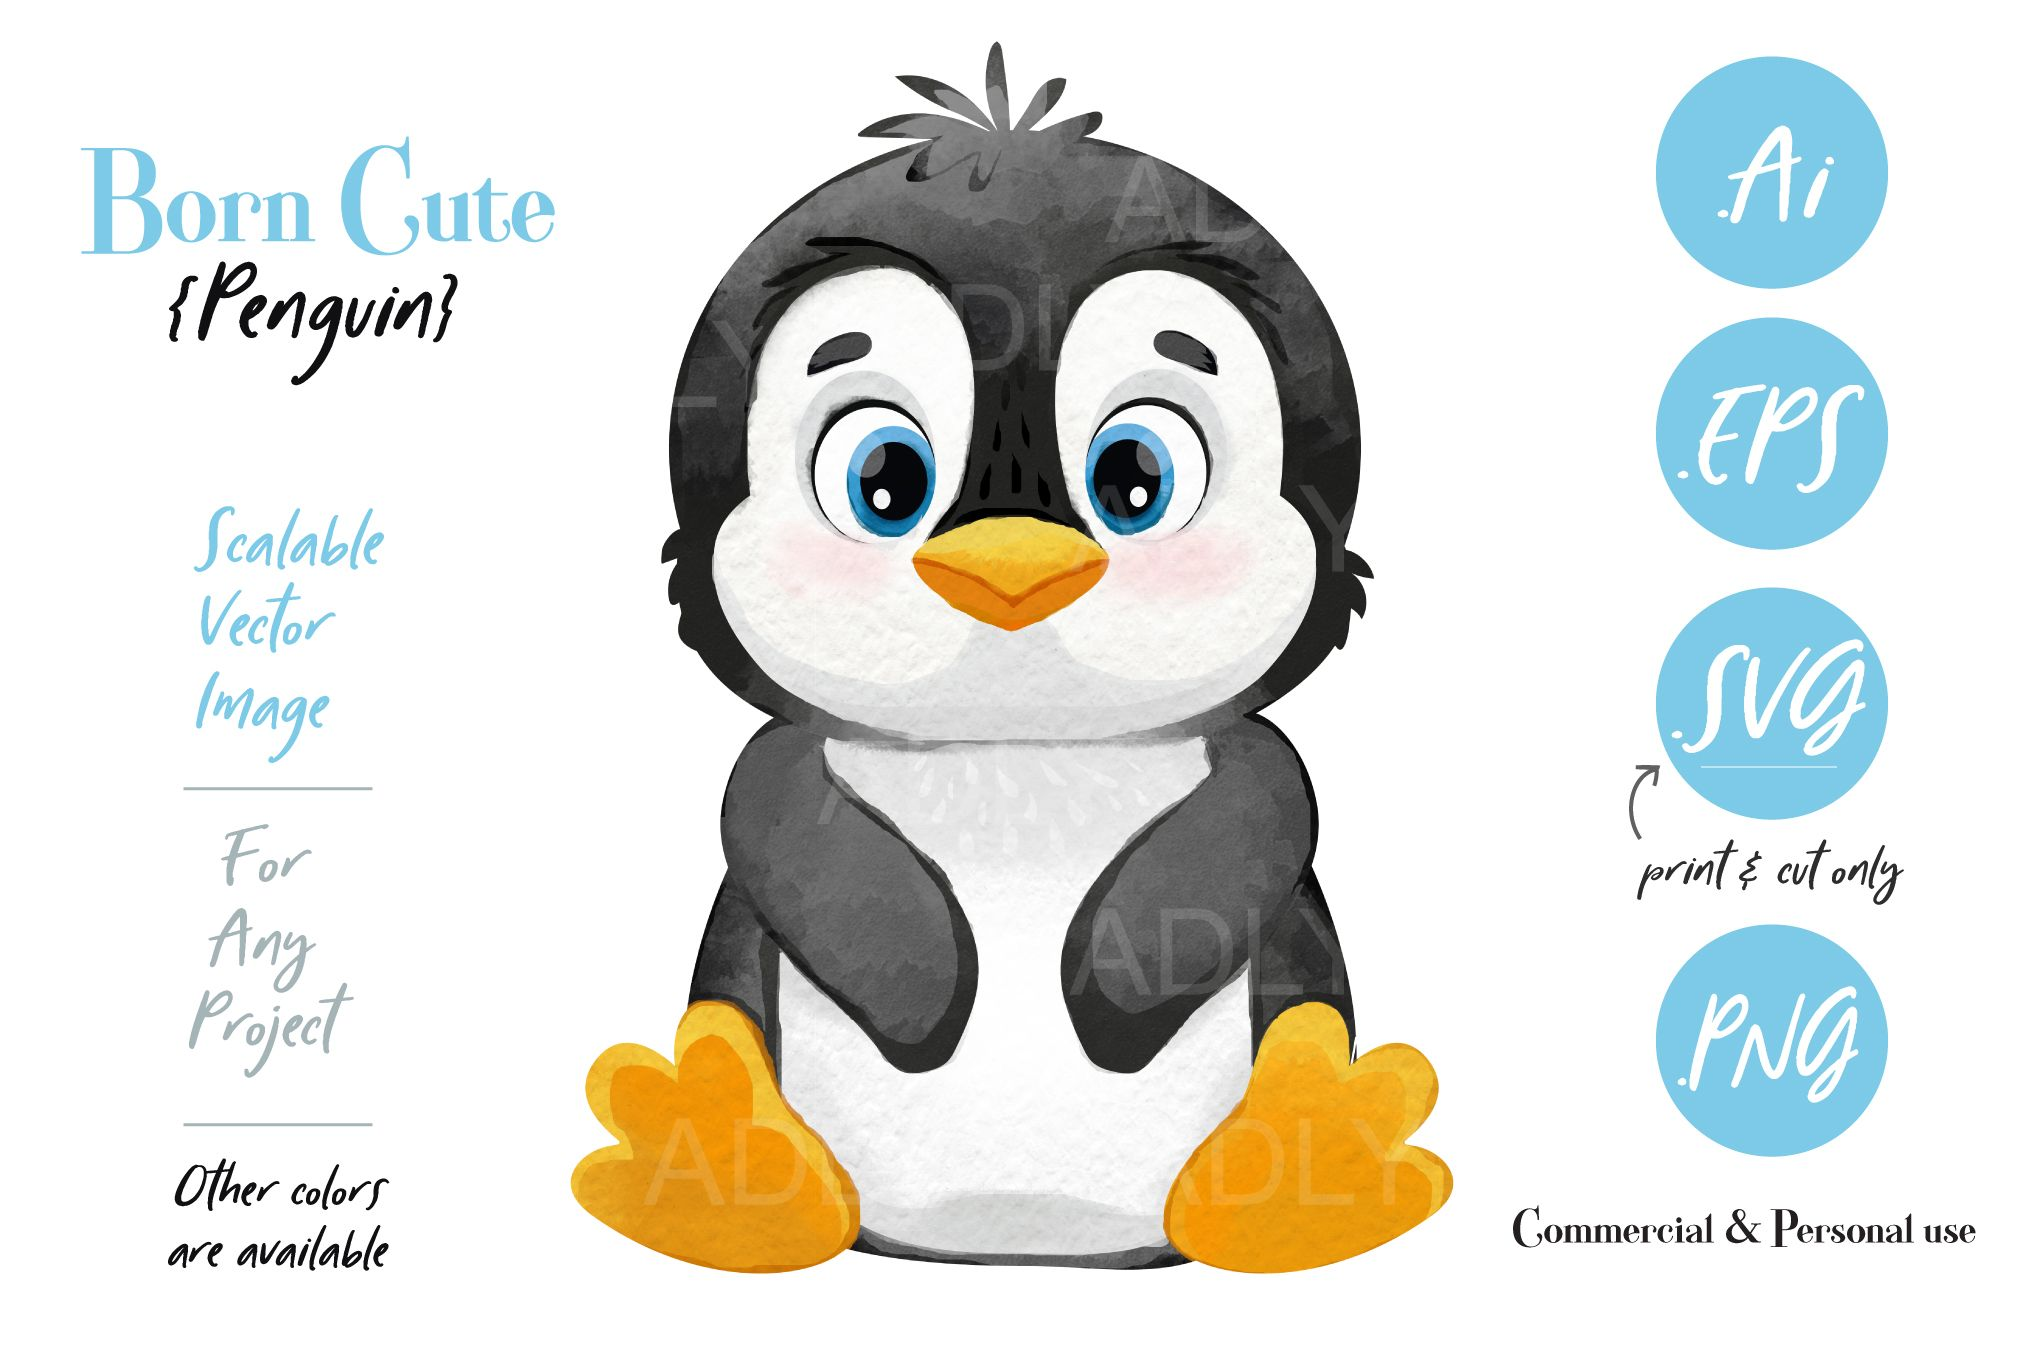 This Is A Digital Design Of A Penguin You Can Use This Clip Art Design For All Of Your Creative